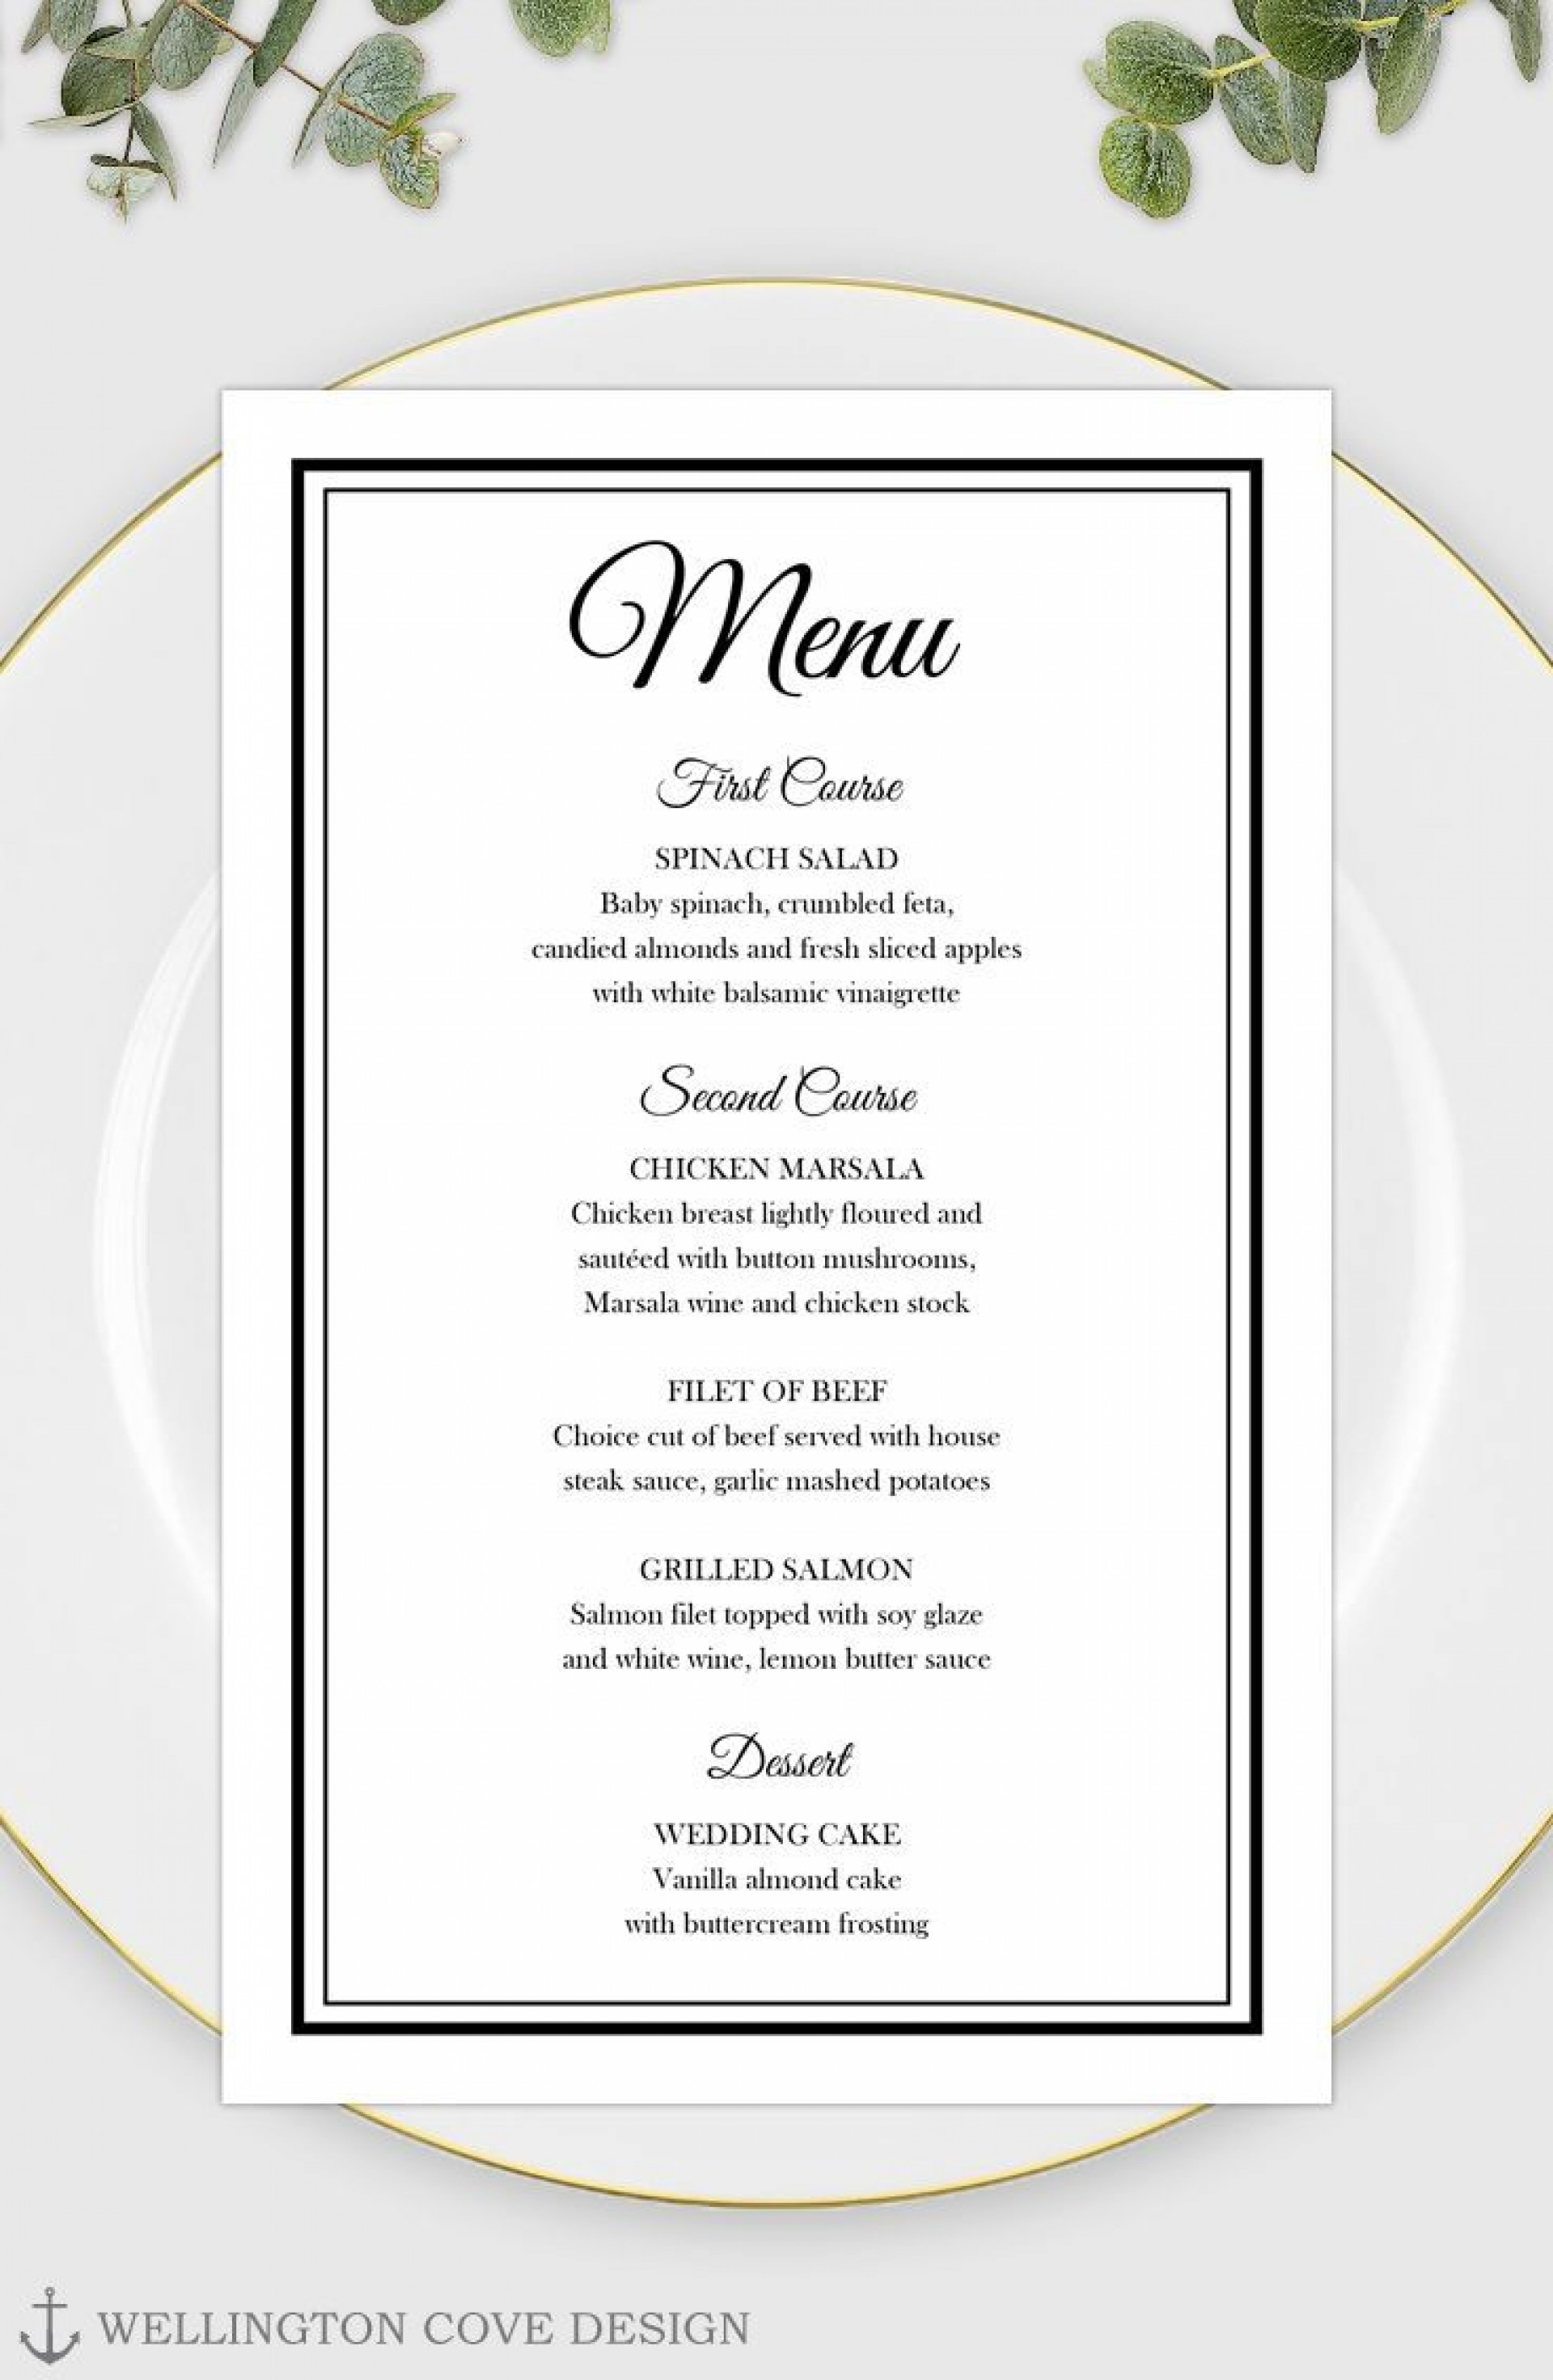 003 Remarkable Free Printable Wedding Menu Card Template Idea 1920